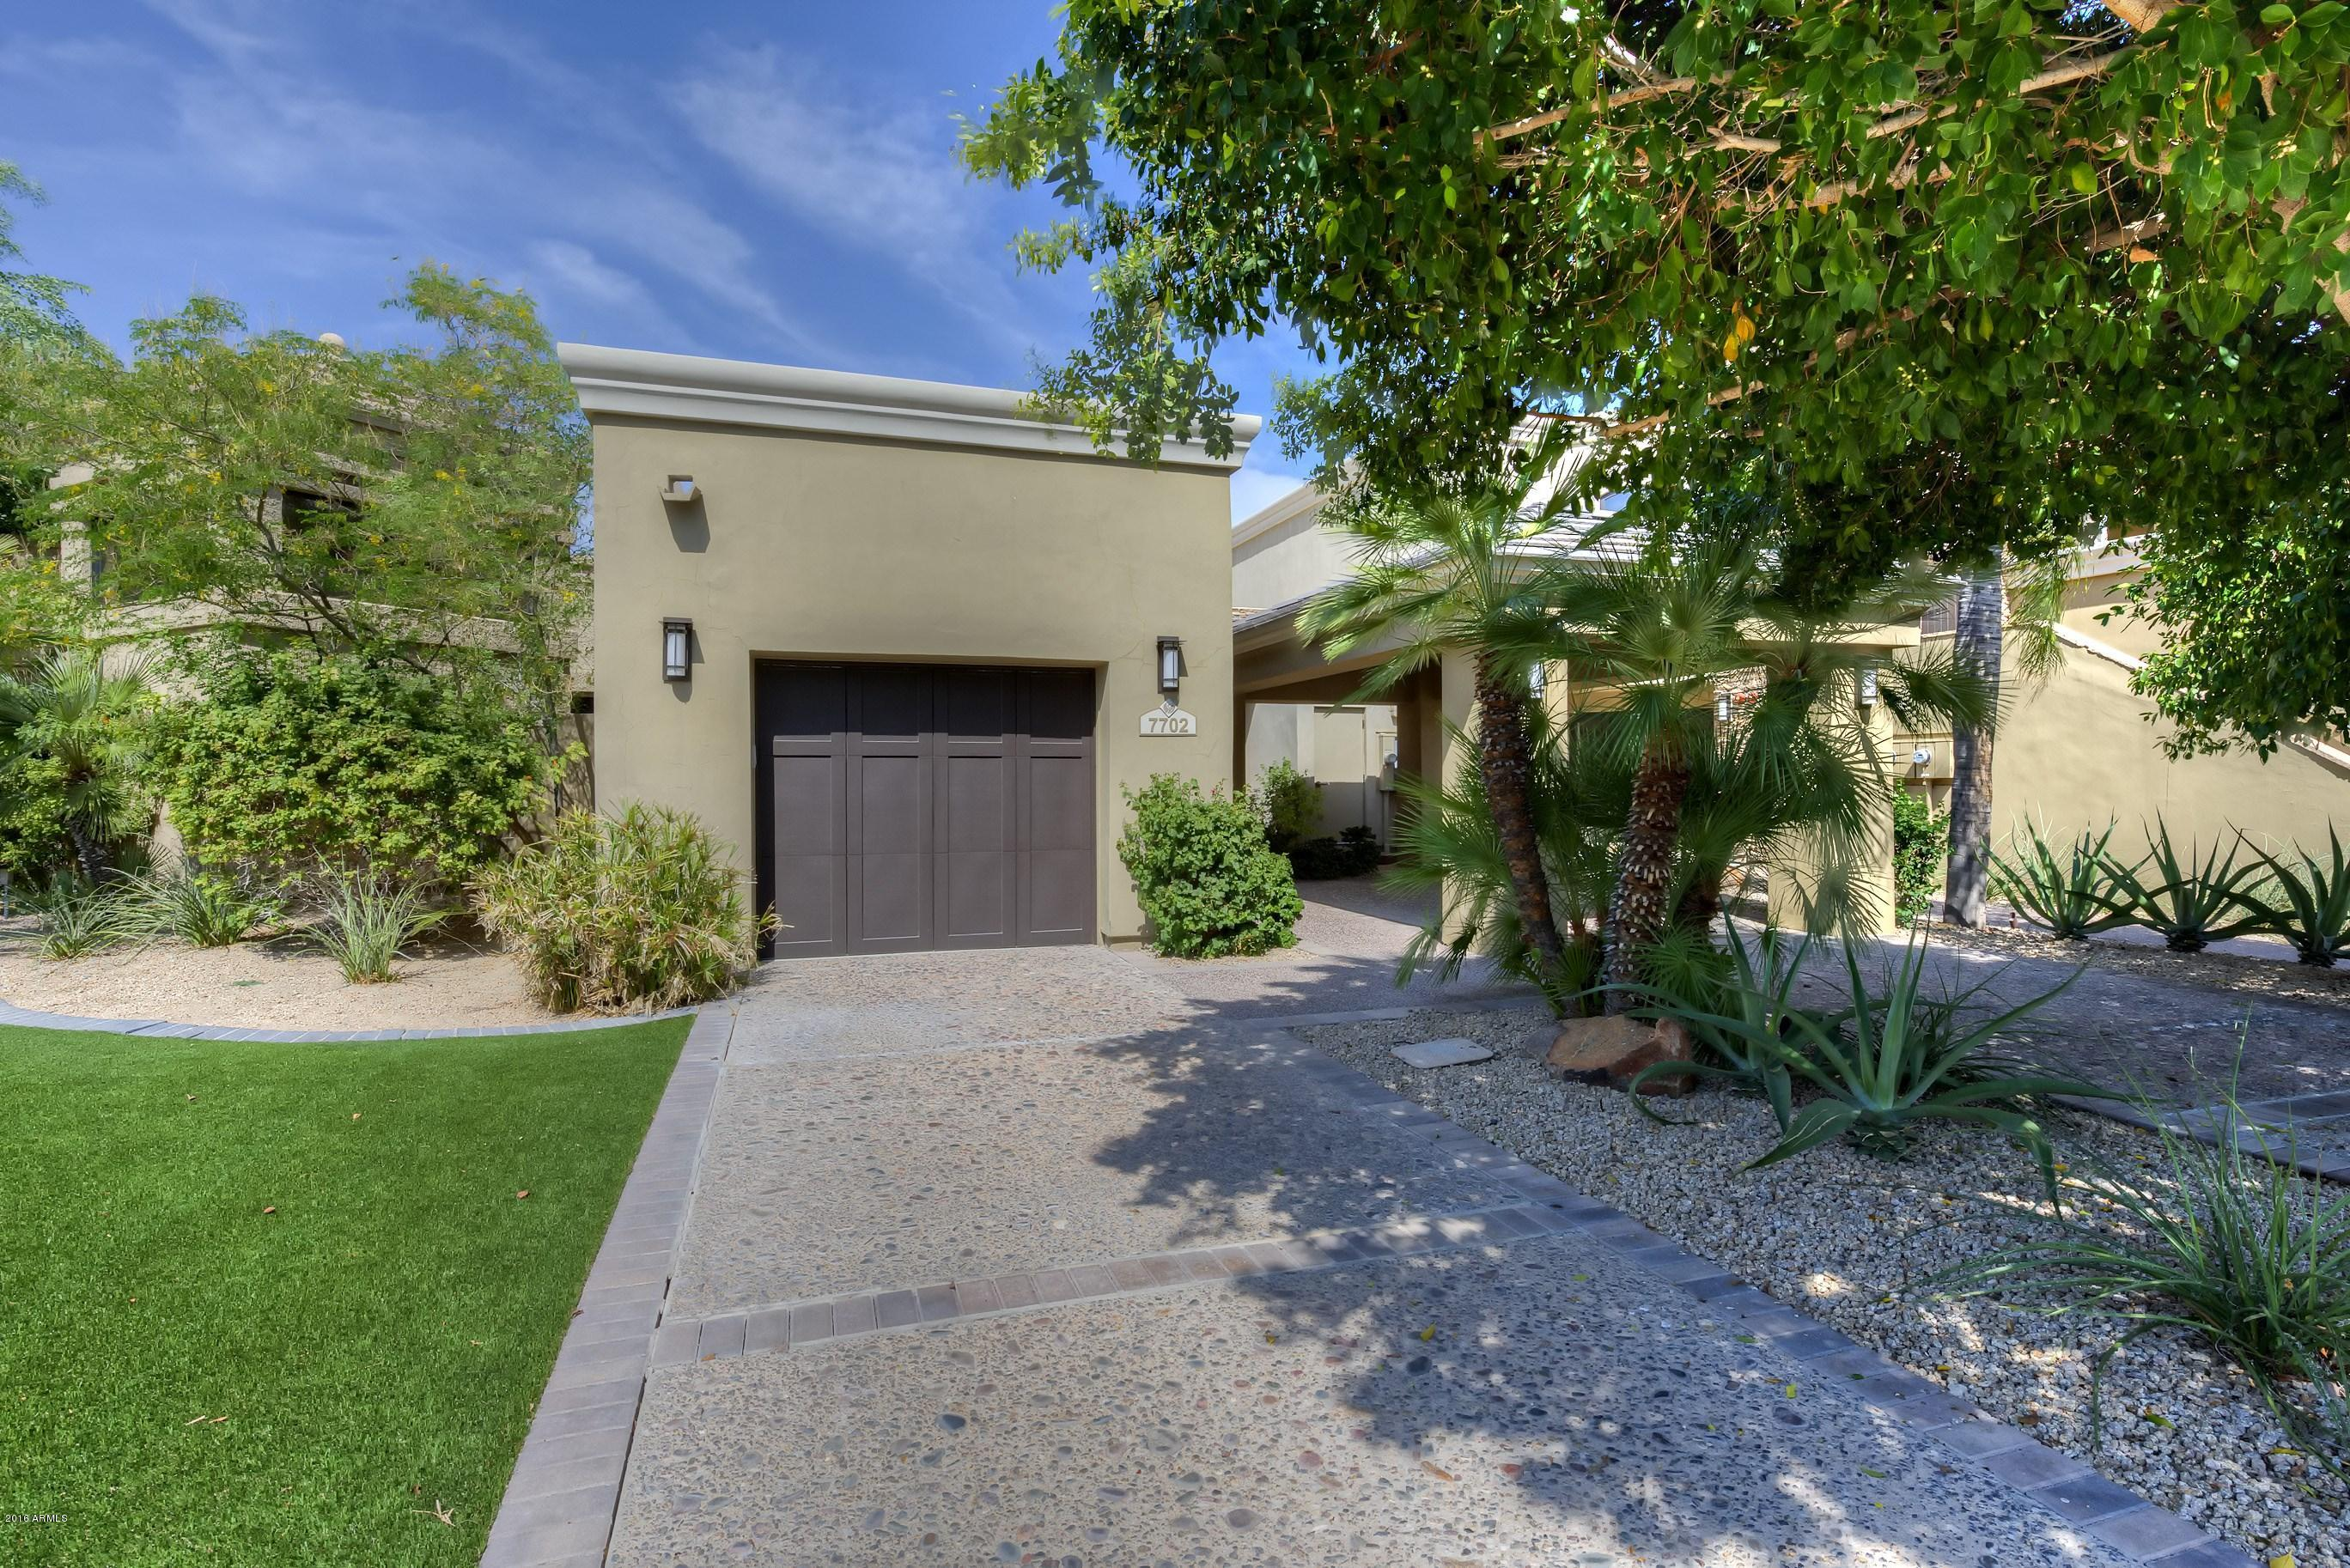 MLS 5433033 4531 N Phoenician Place Unit 7702, Phoenix, AZ Phoenix AZ Adult Community